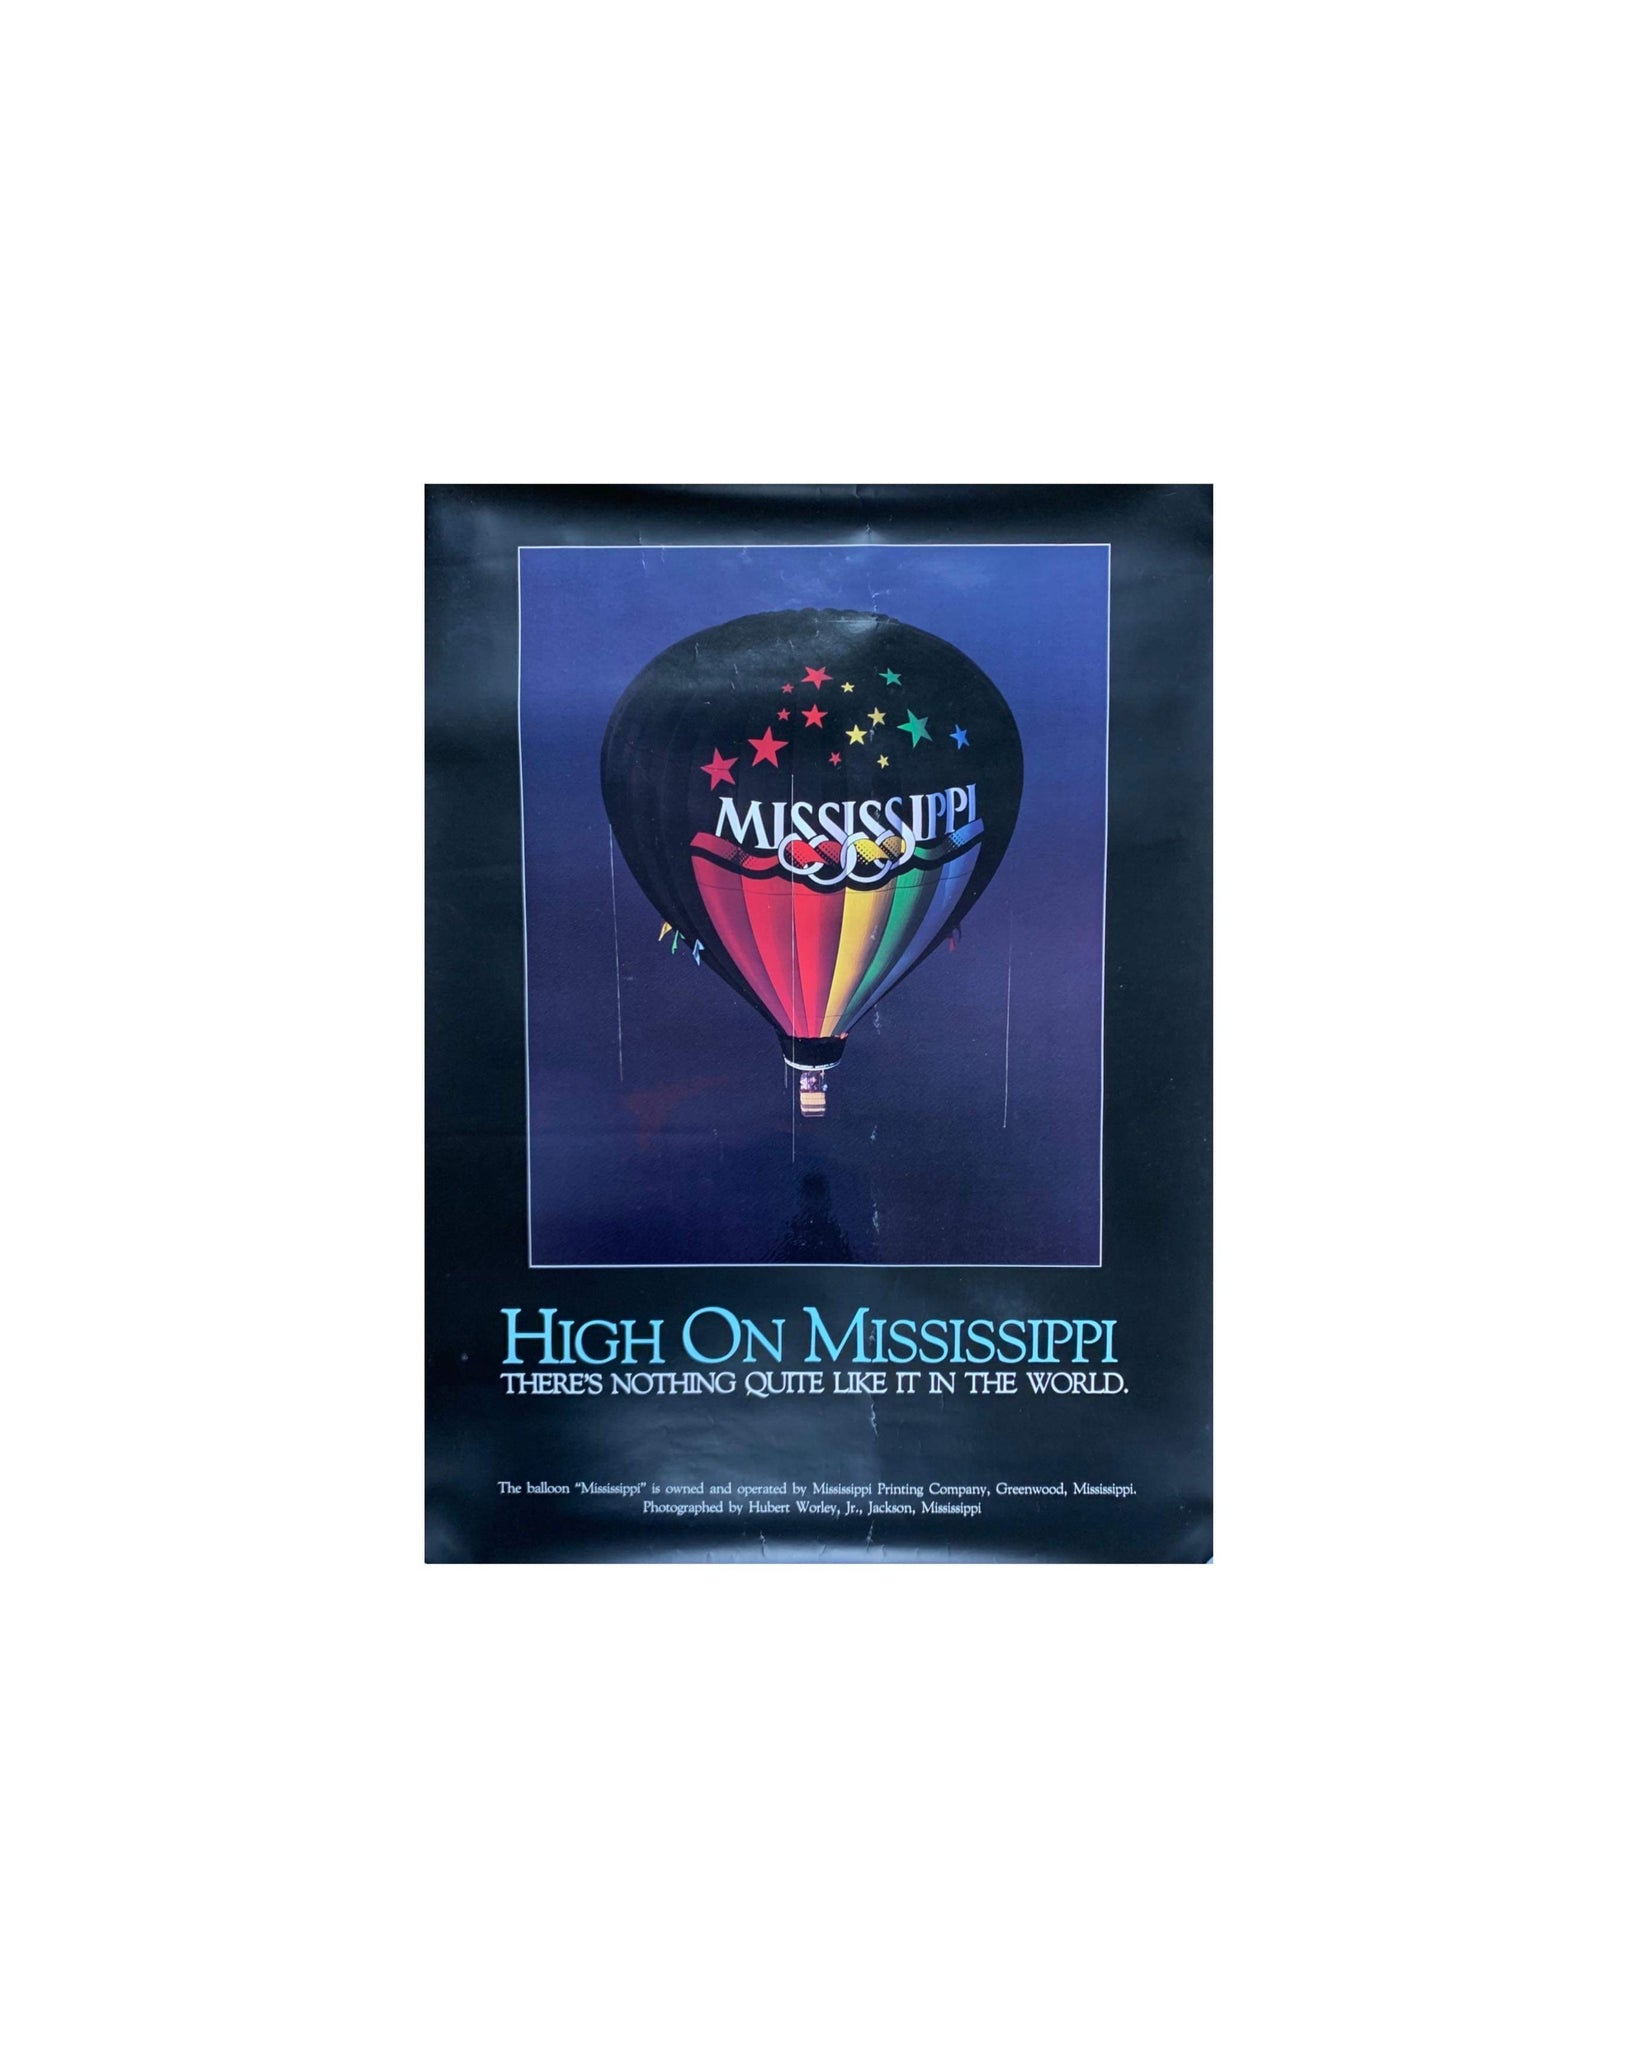 High on Mississippi 1988 Exhibition Poster - 46x61